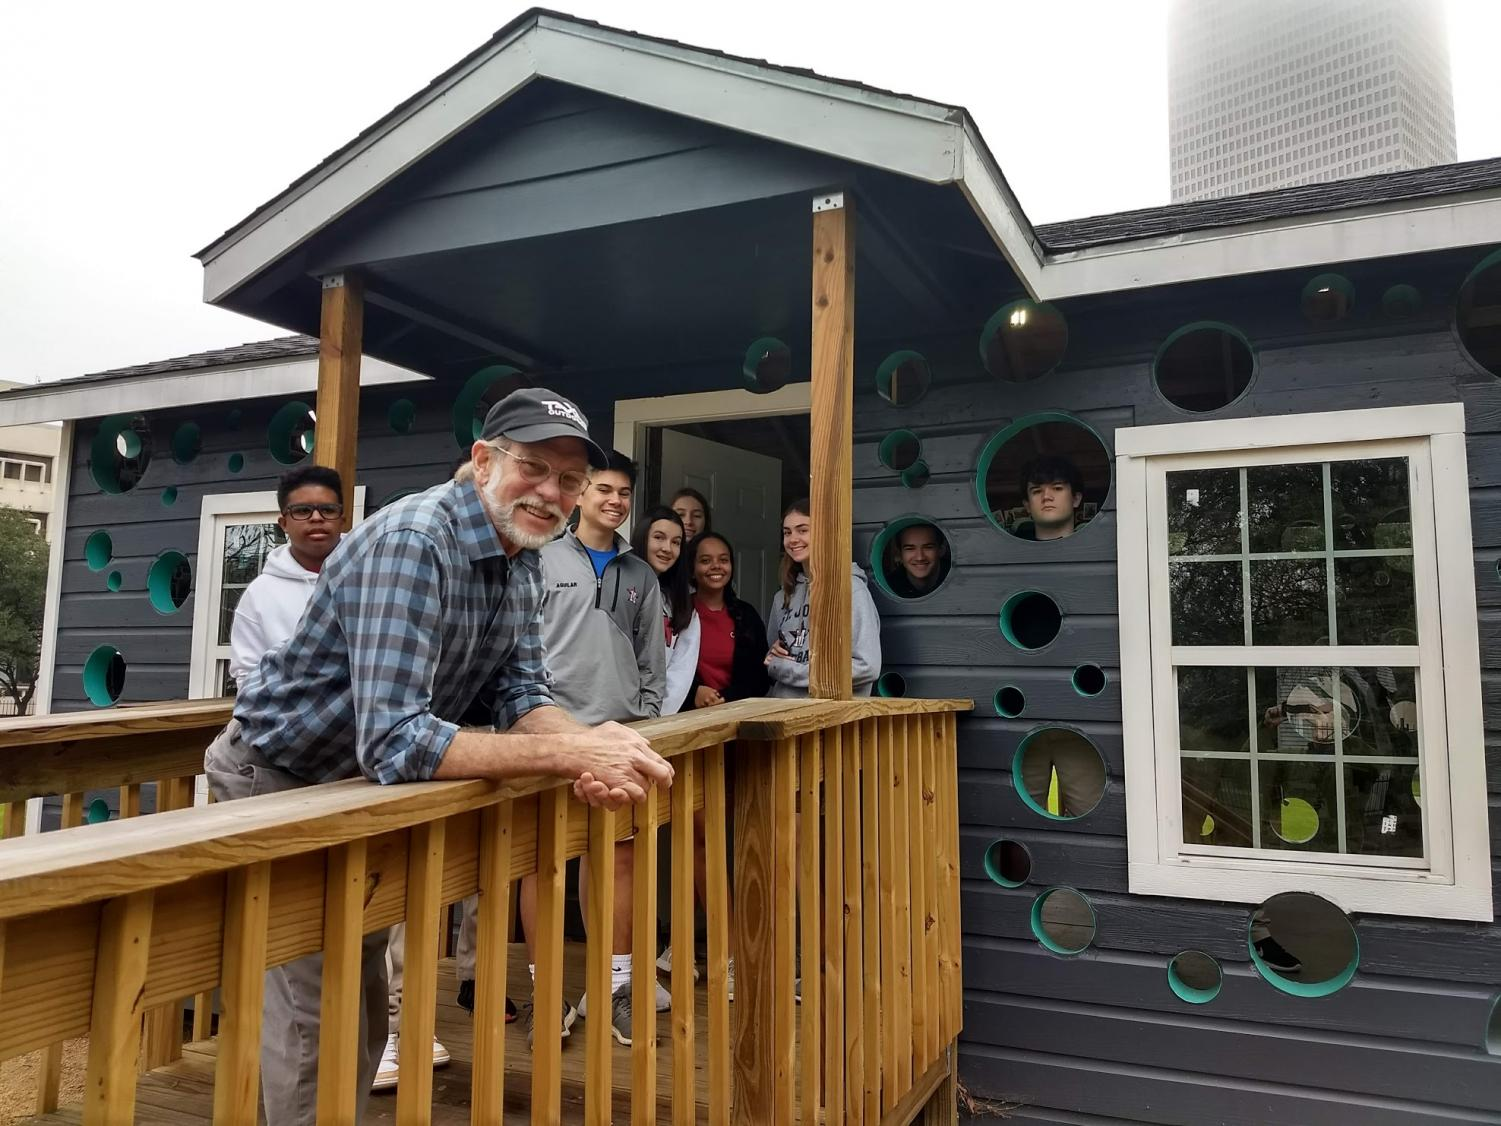 Havel+introduces+students+to+his+own+installation+in+Sam+Houston+Park%3A+%22Open+House.%22